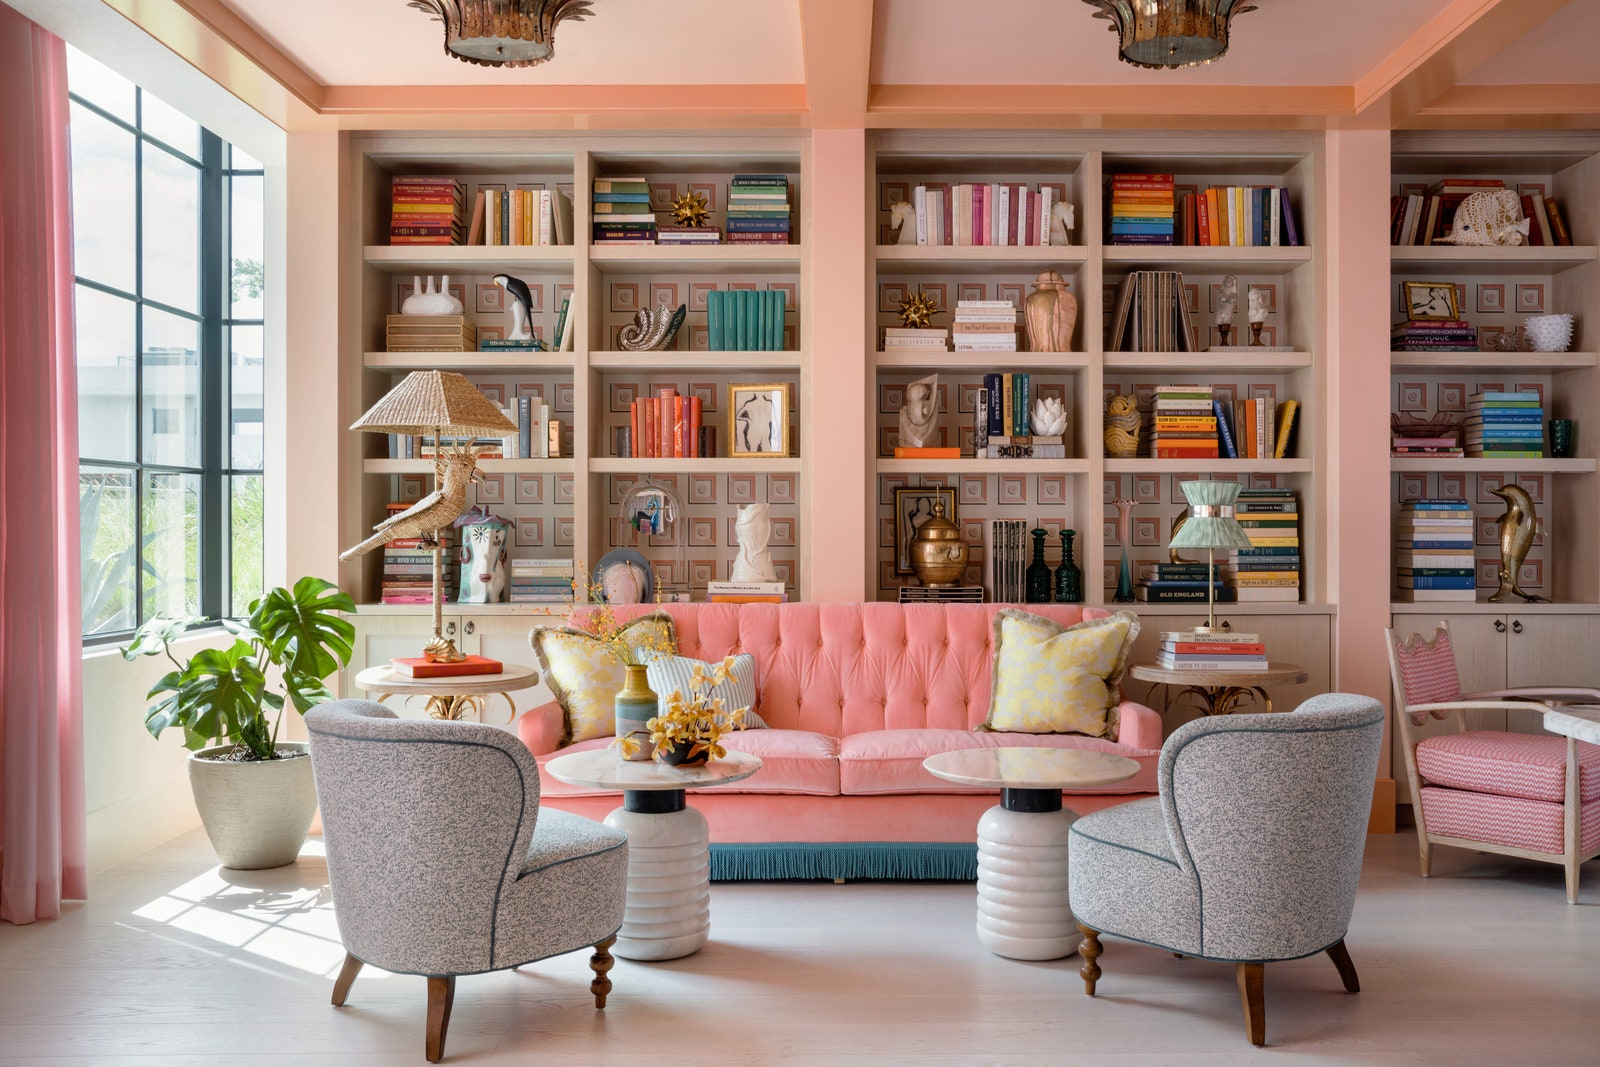 The Goodtime Hotel library